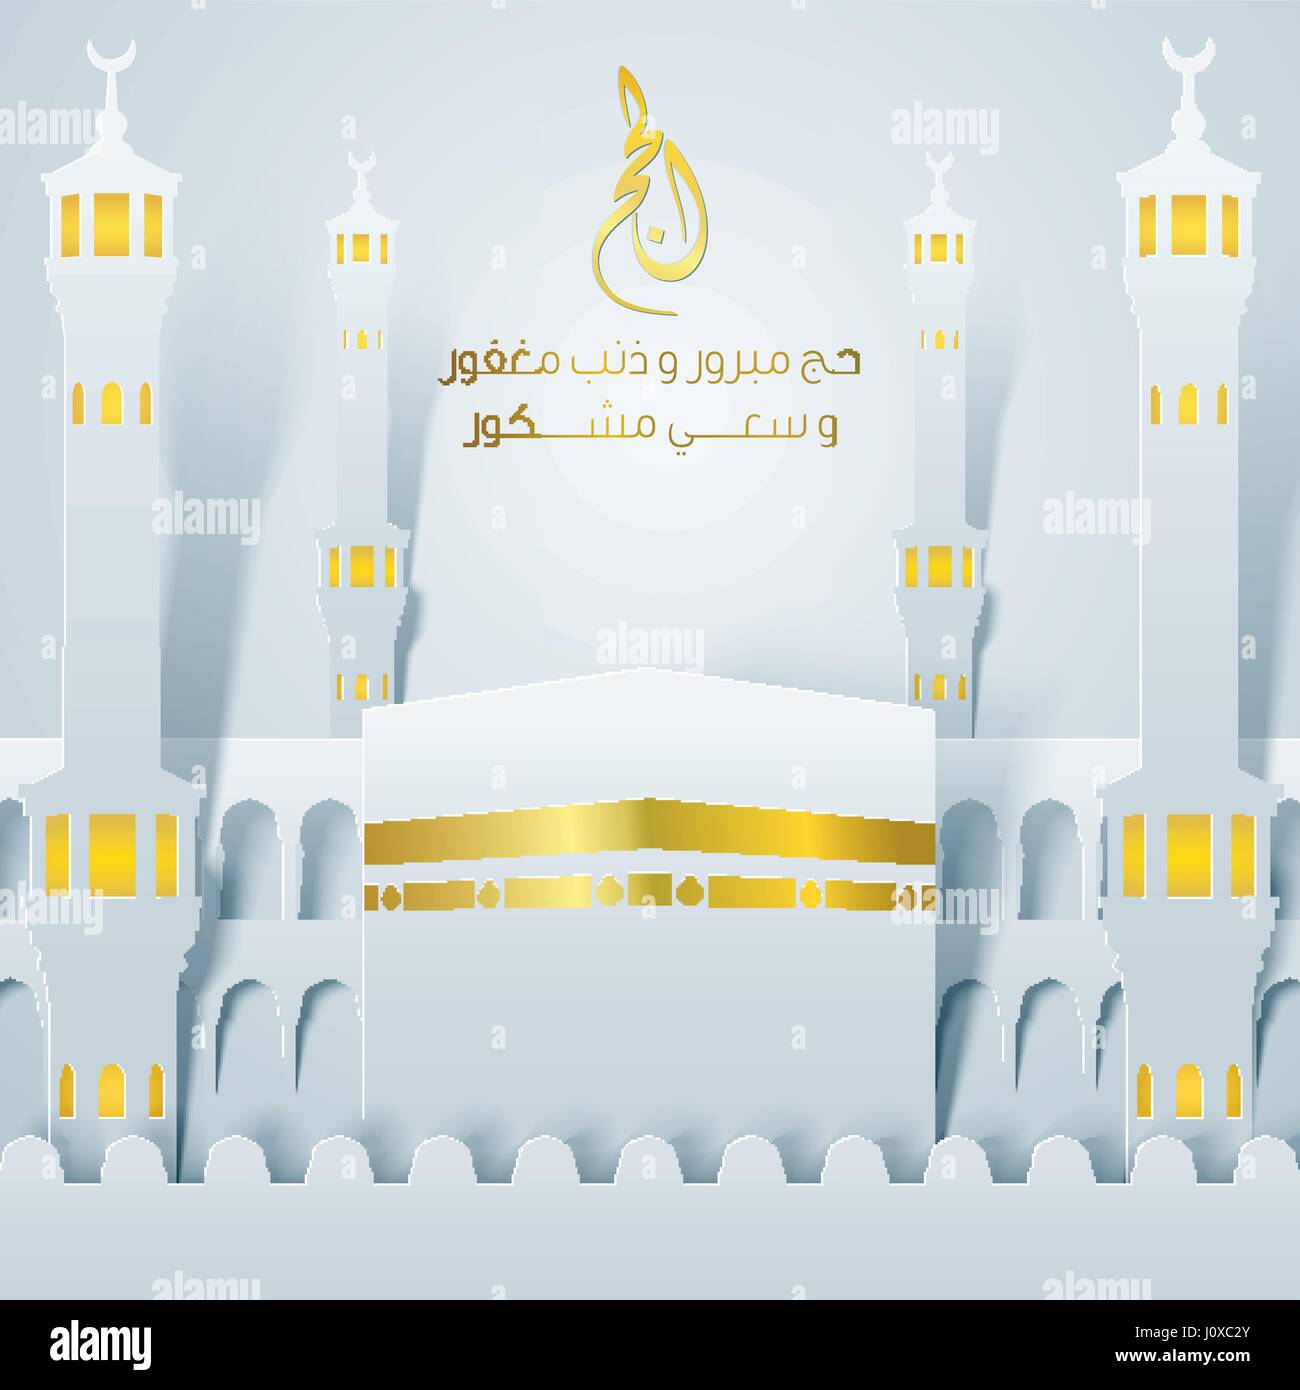 Umrah Banner: Hajj Islamic Mosque And Kaaba With Arabic Calligraphy